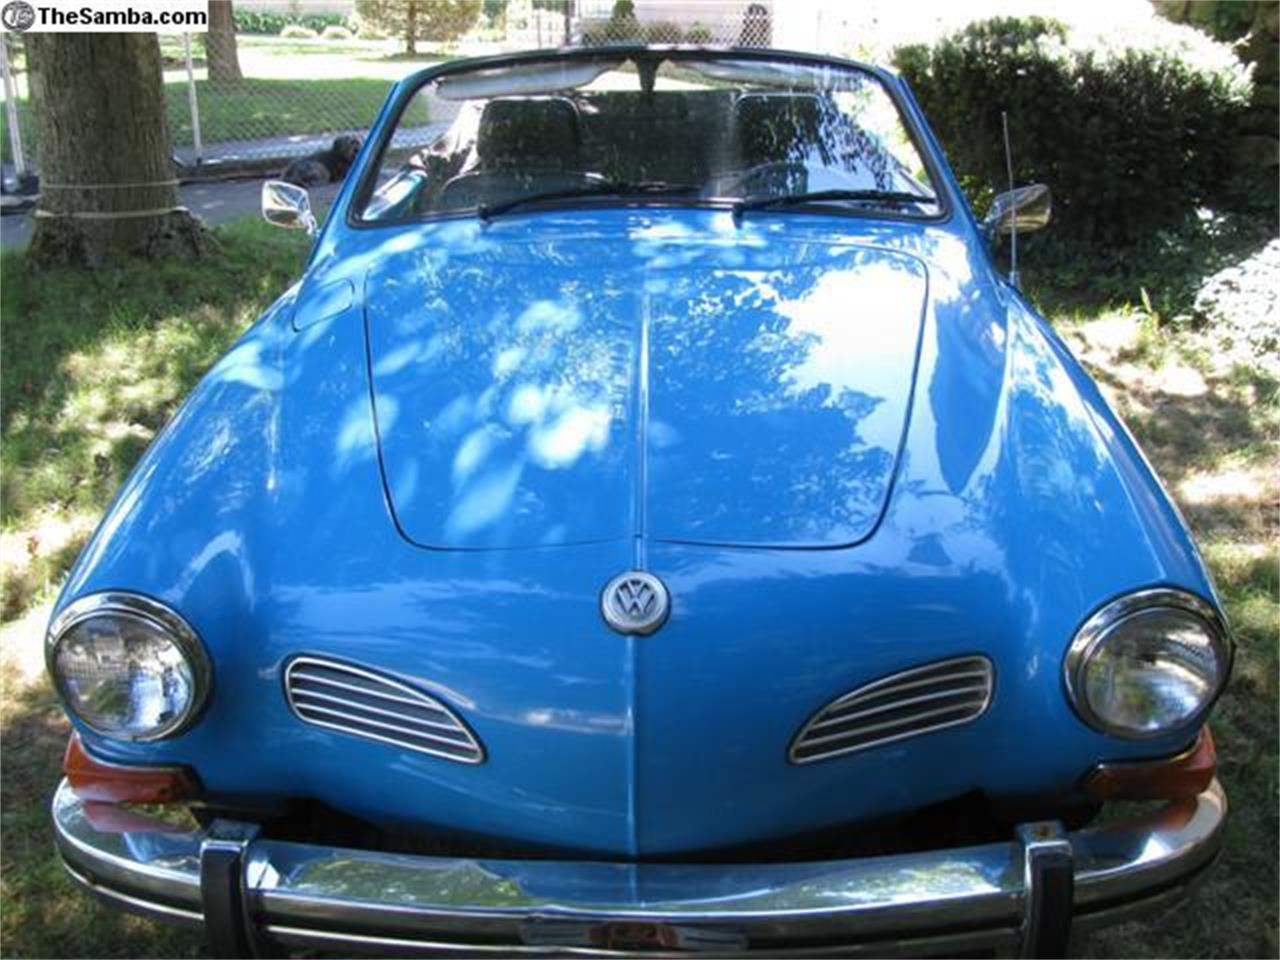 Large Picture of Classic '73 Volkswagen Karmann Ghia - $12,500.00 - EV9I